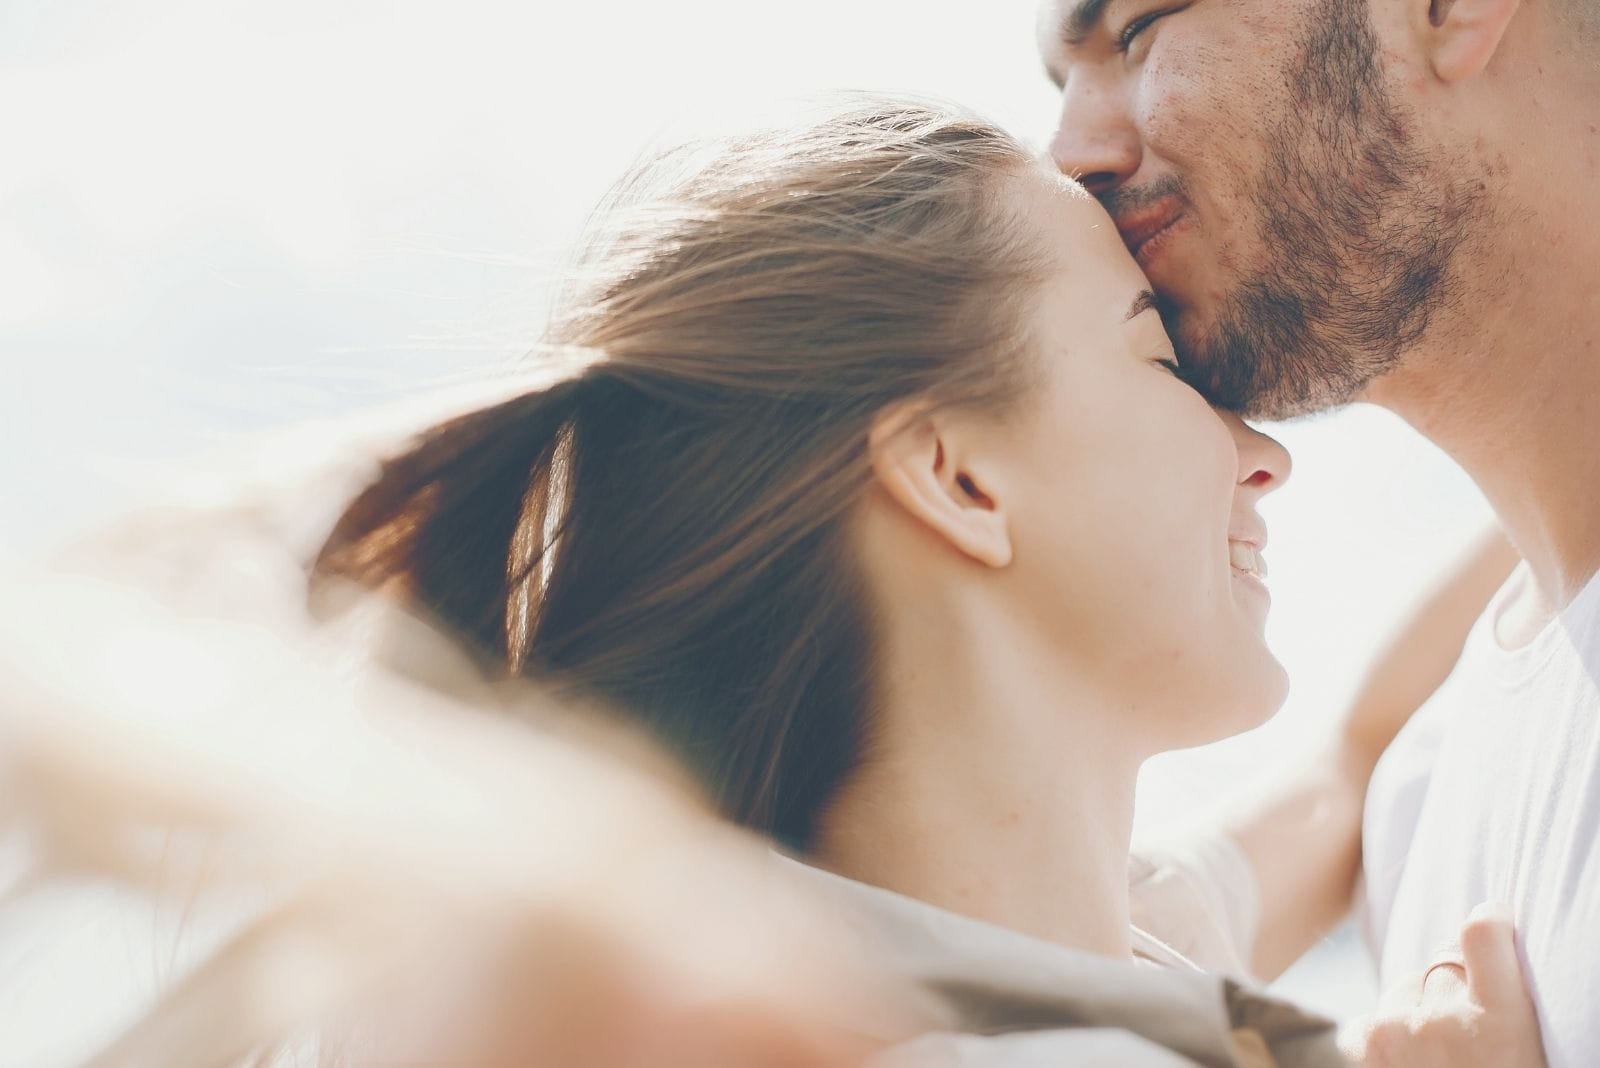 tender and merry lovers enjoying with boyfriend kissing the woman's forehead in close up image